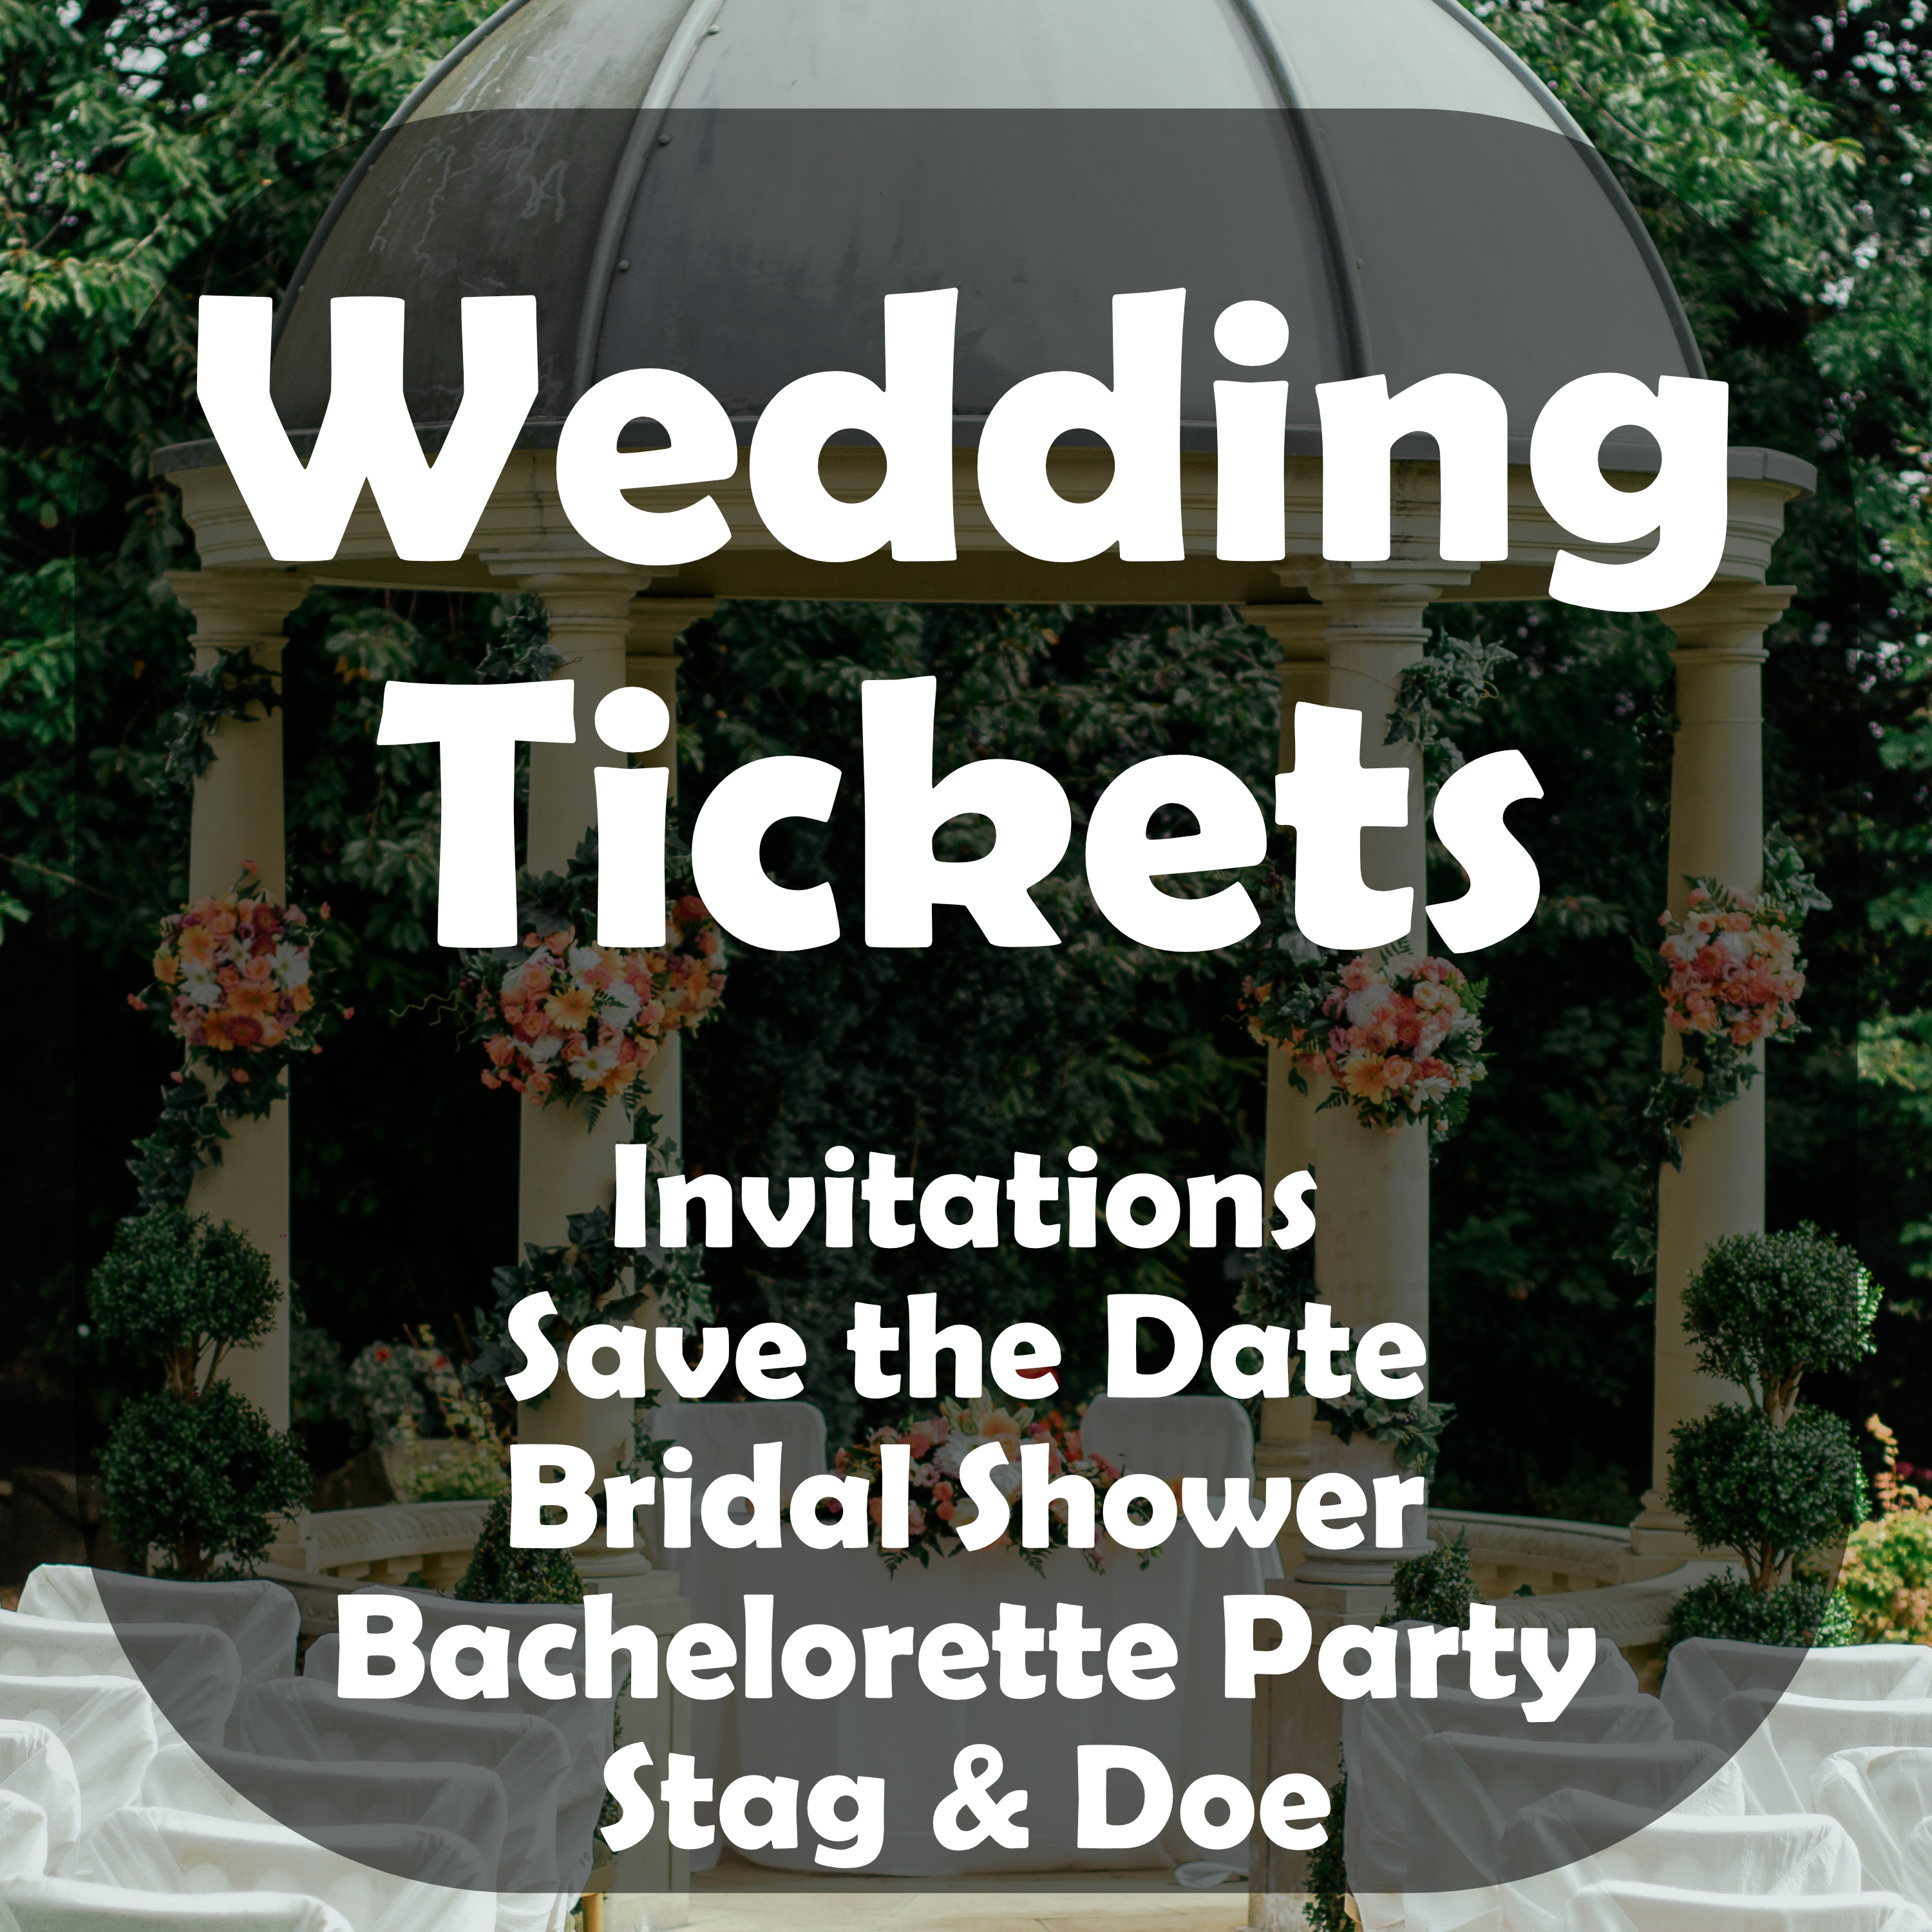 Collection Image for Weddings